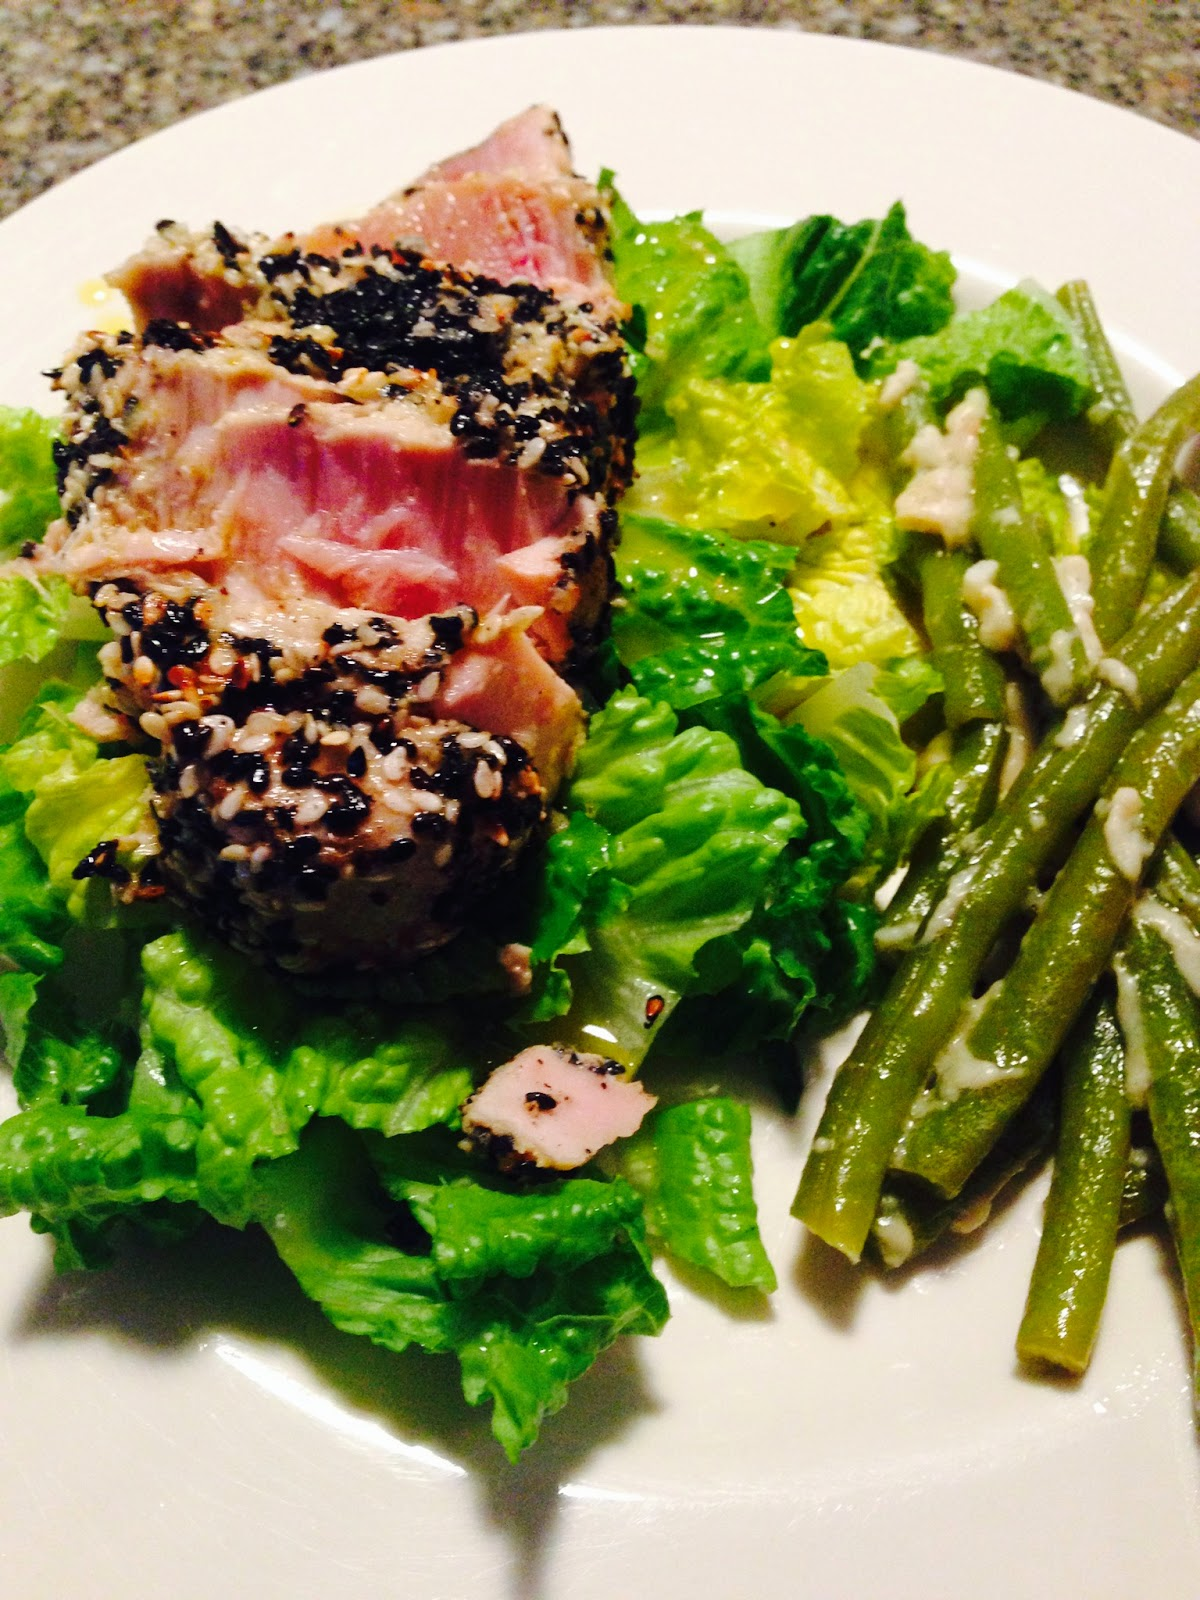 ... seared tuna with lime sesame seared tuna with lime cook the tuna over